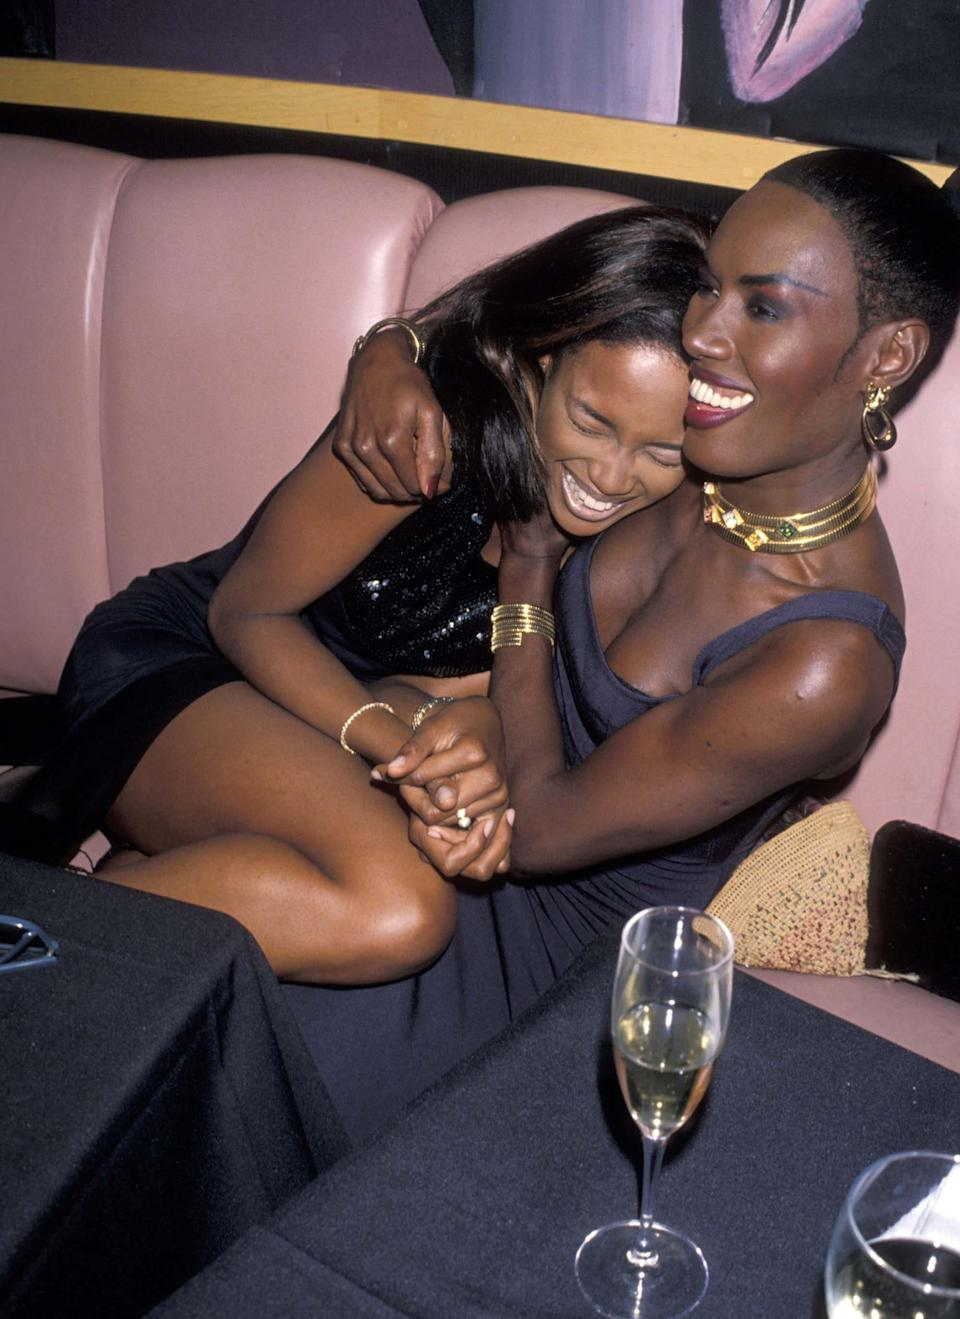 "<div class=""caption""> With Naomi Campbell, 1990 </div> <cite class=""credit"">Photo: Getty Images</cite>"